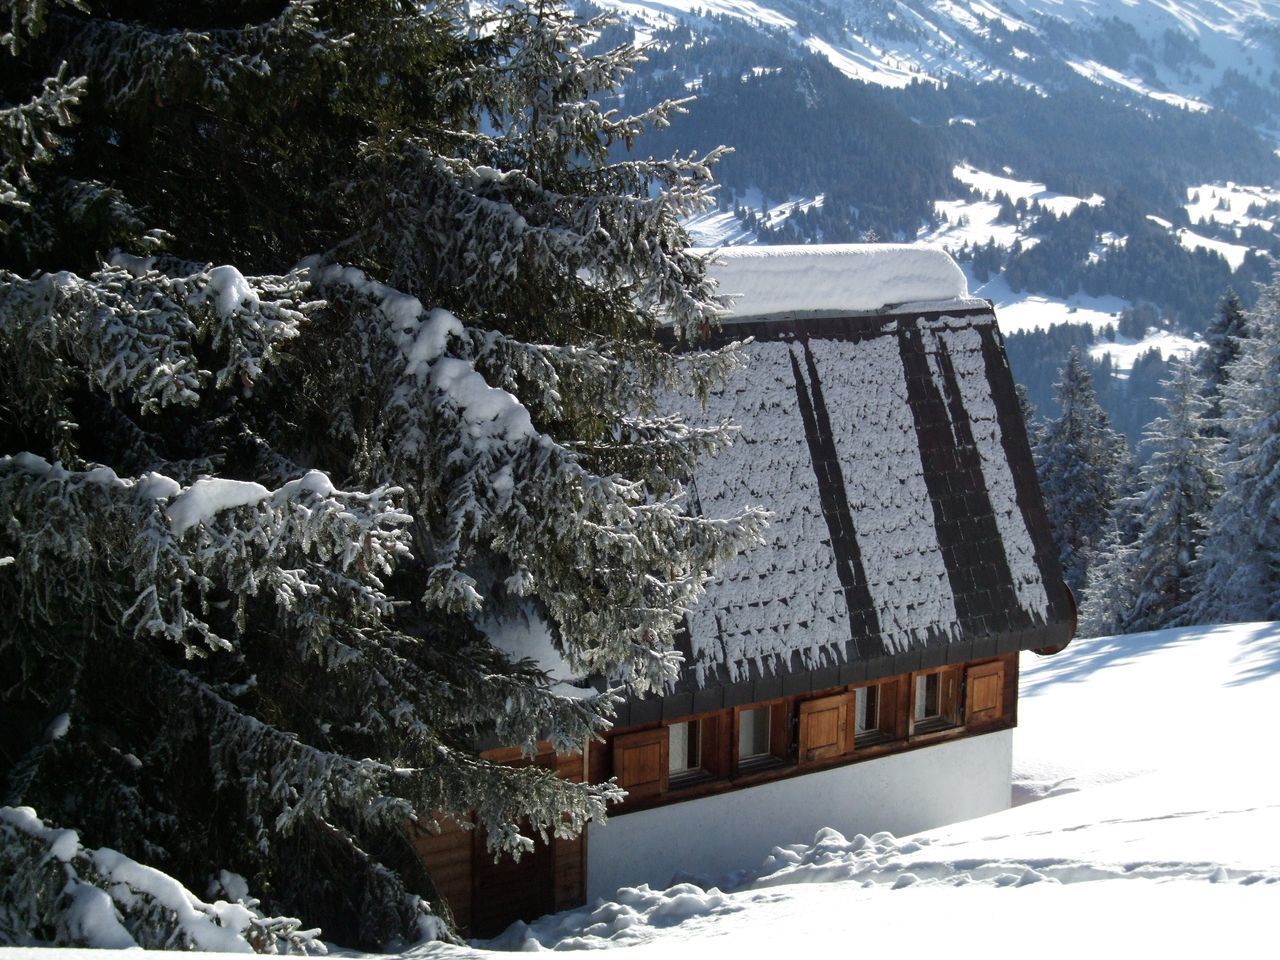 Beauty In Nature Chalet Cold Temperature Day Mountain Nature No People Outdoors Scenics Sky Snow Snowing Tree Winter